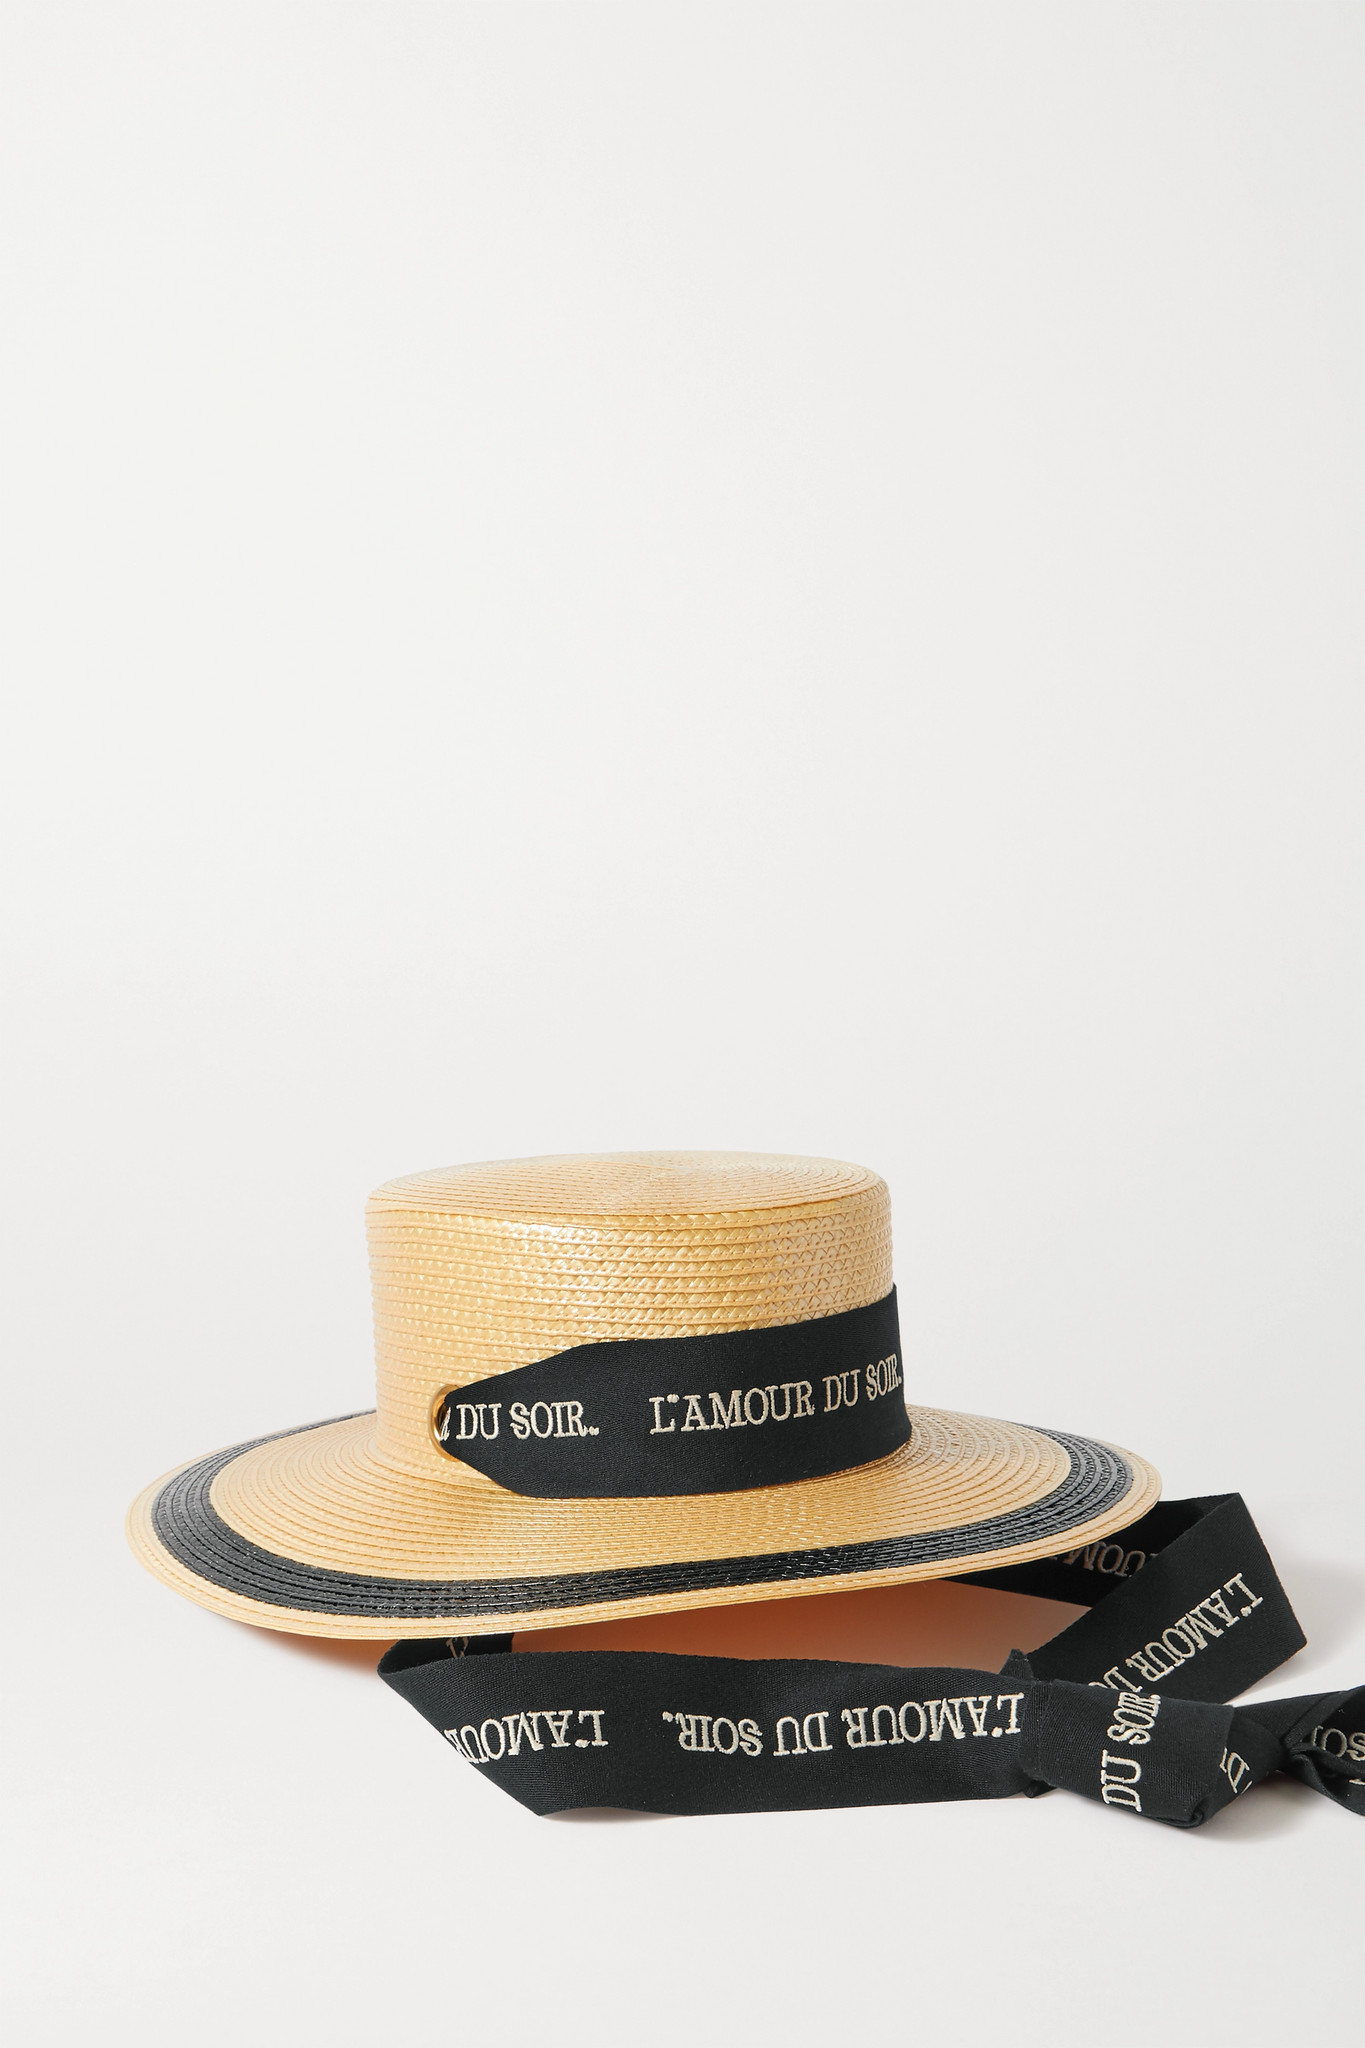 GUCCI - Embroidered Cotton-trimmed Straw Hat - Yellow - x small